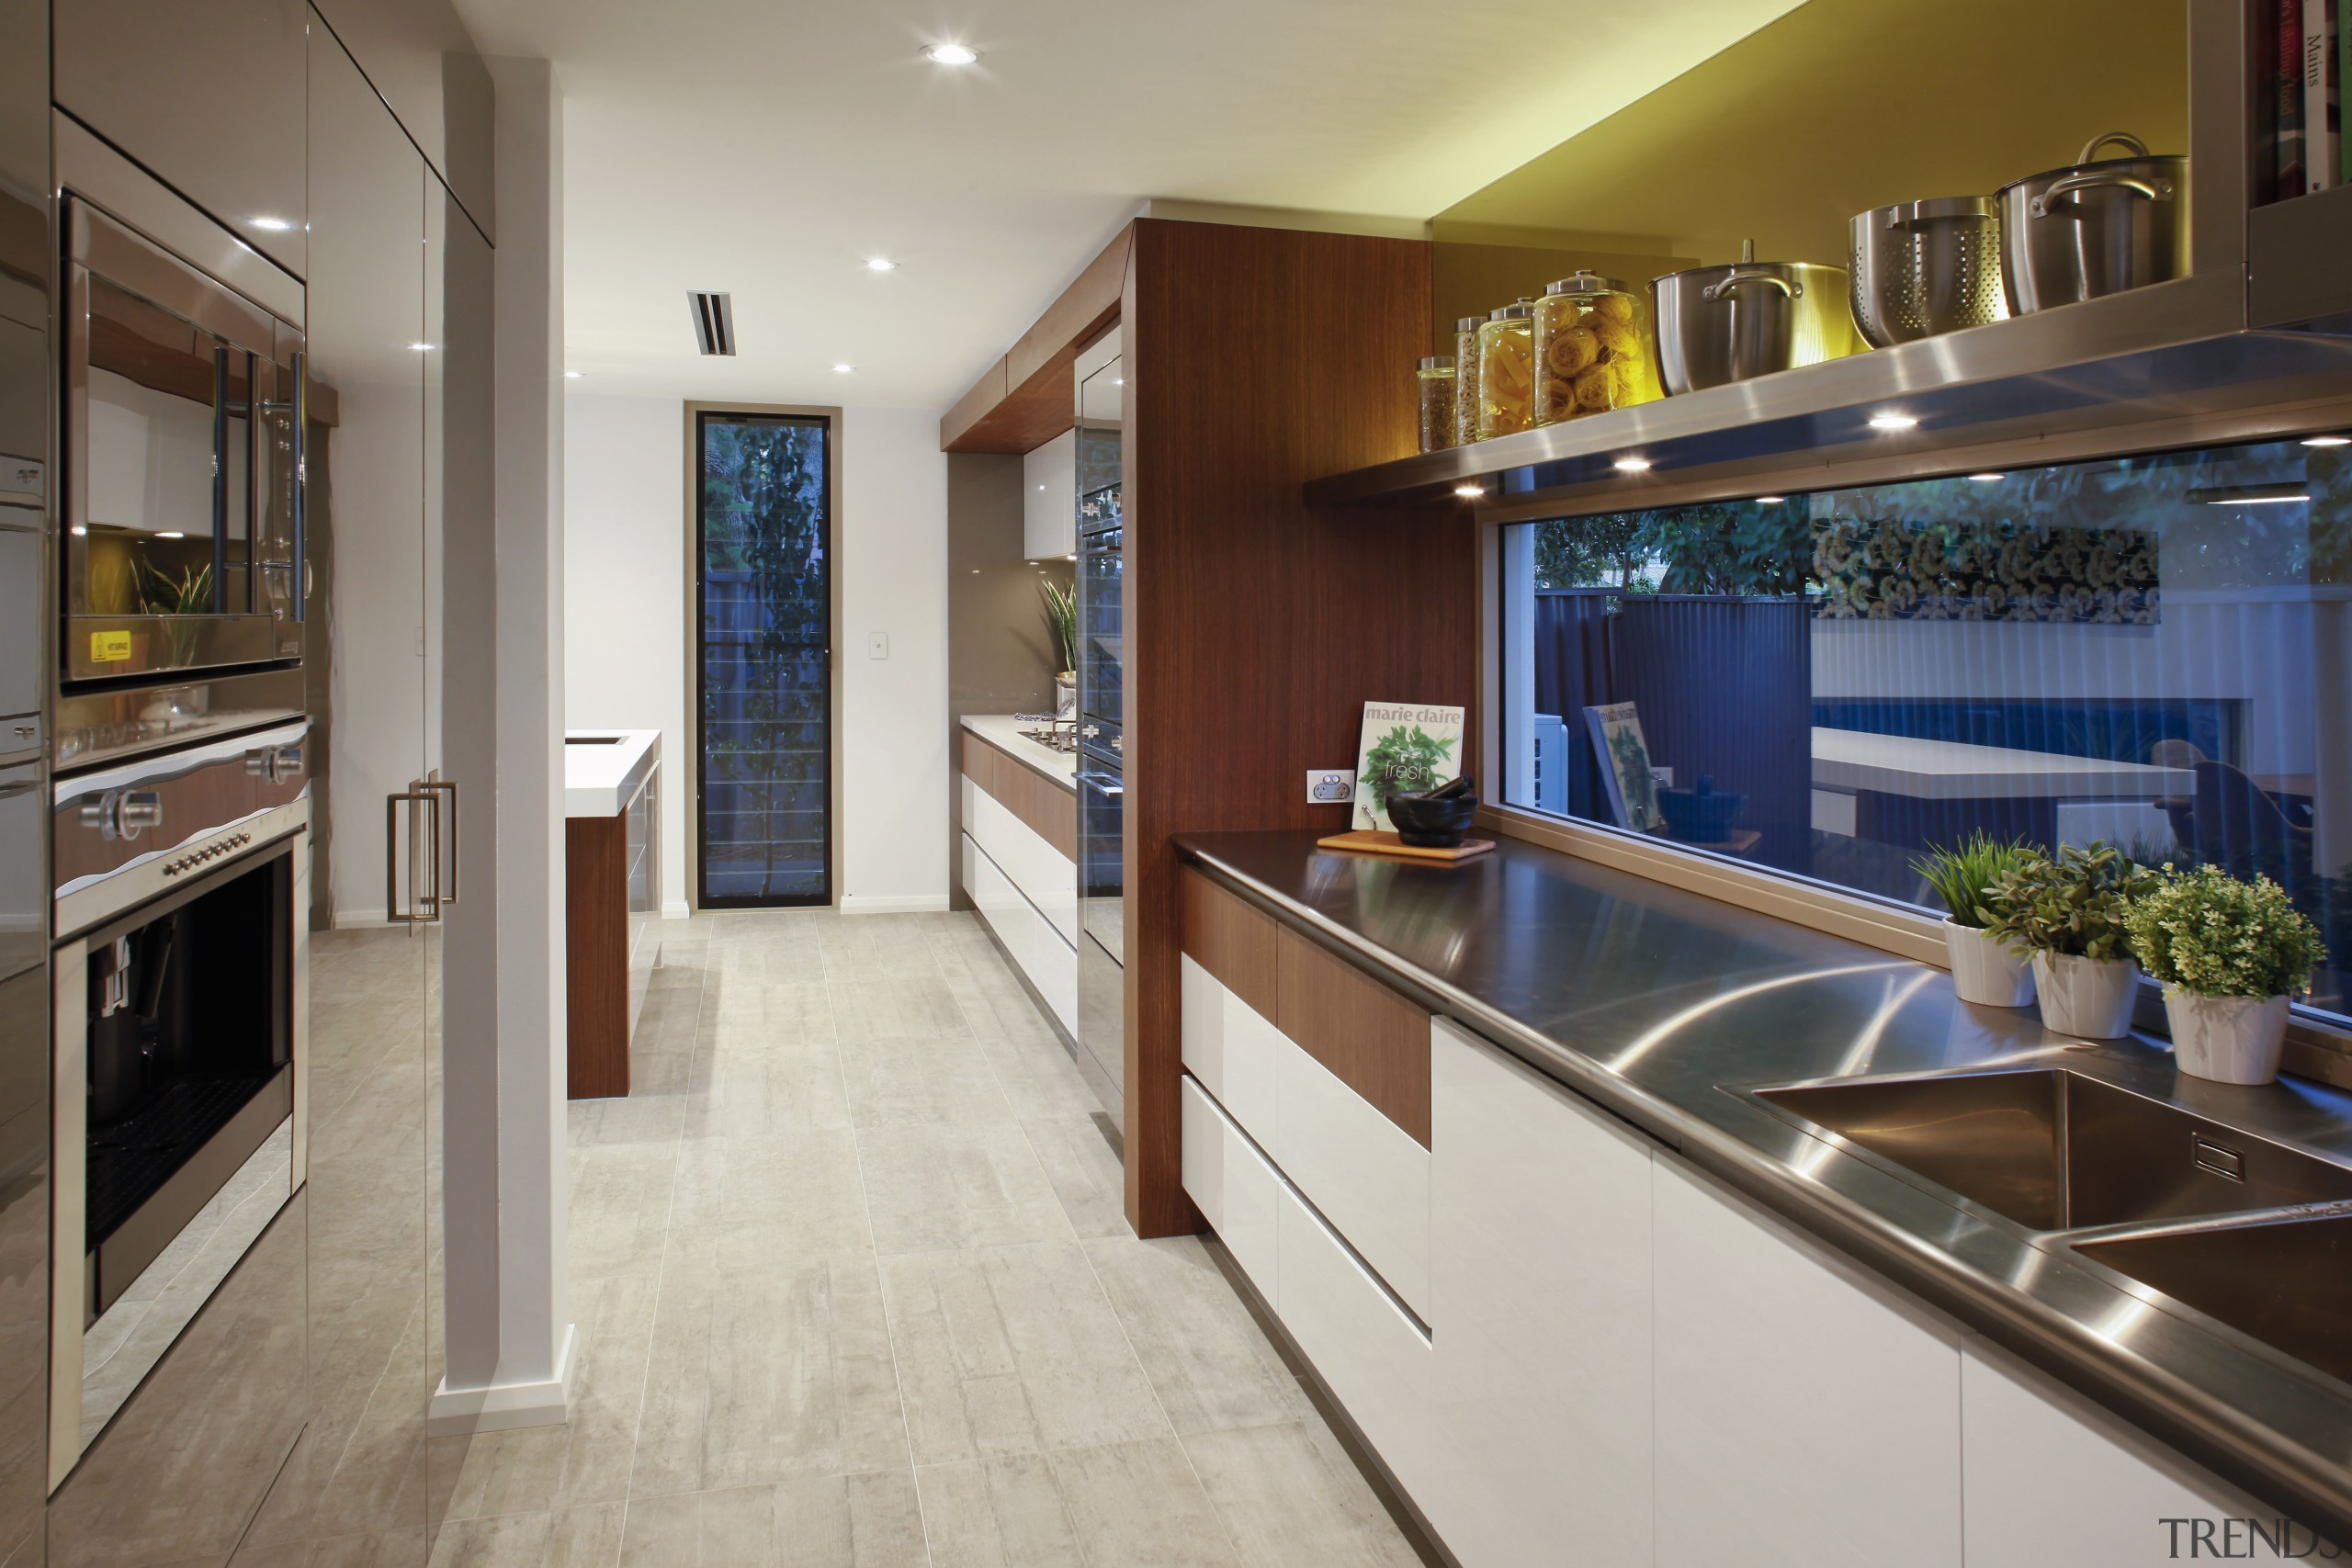 The cabinetry in this award-winning kitchen extends into cabinetry, countertop, cuisine classique, interior design, kitchen, real estate, room, gray, brown